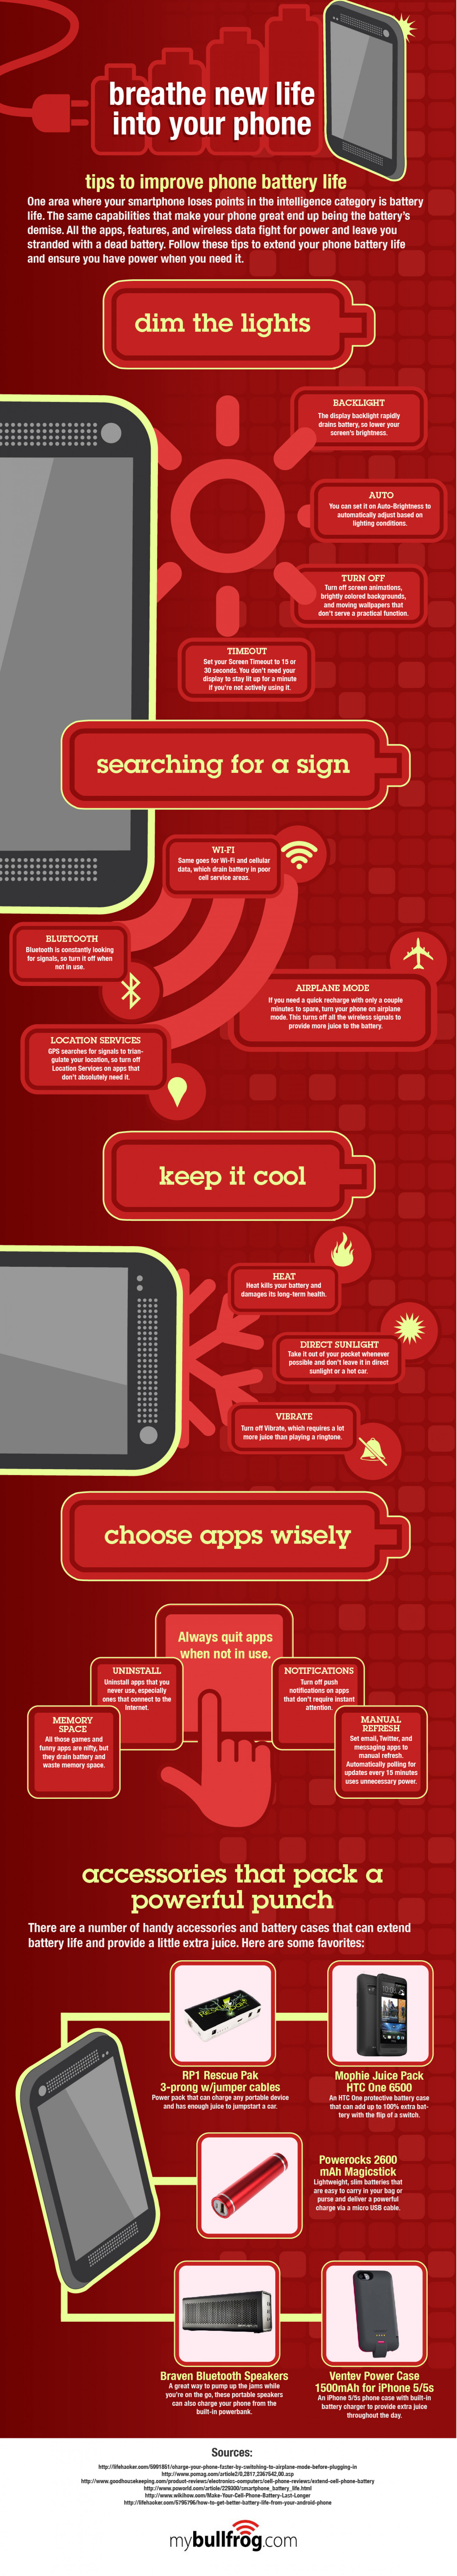 Breathe New Life Into Your Phone Infographic